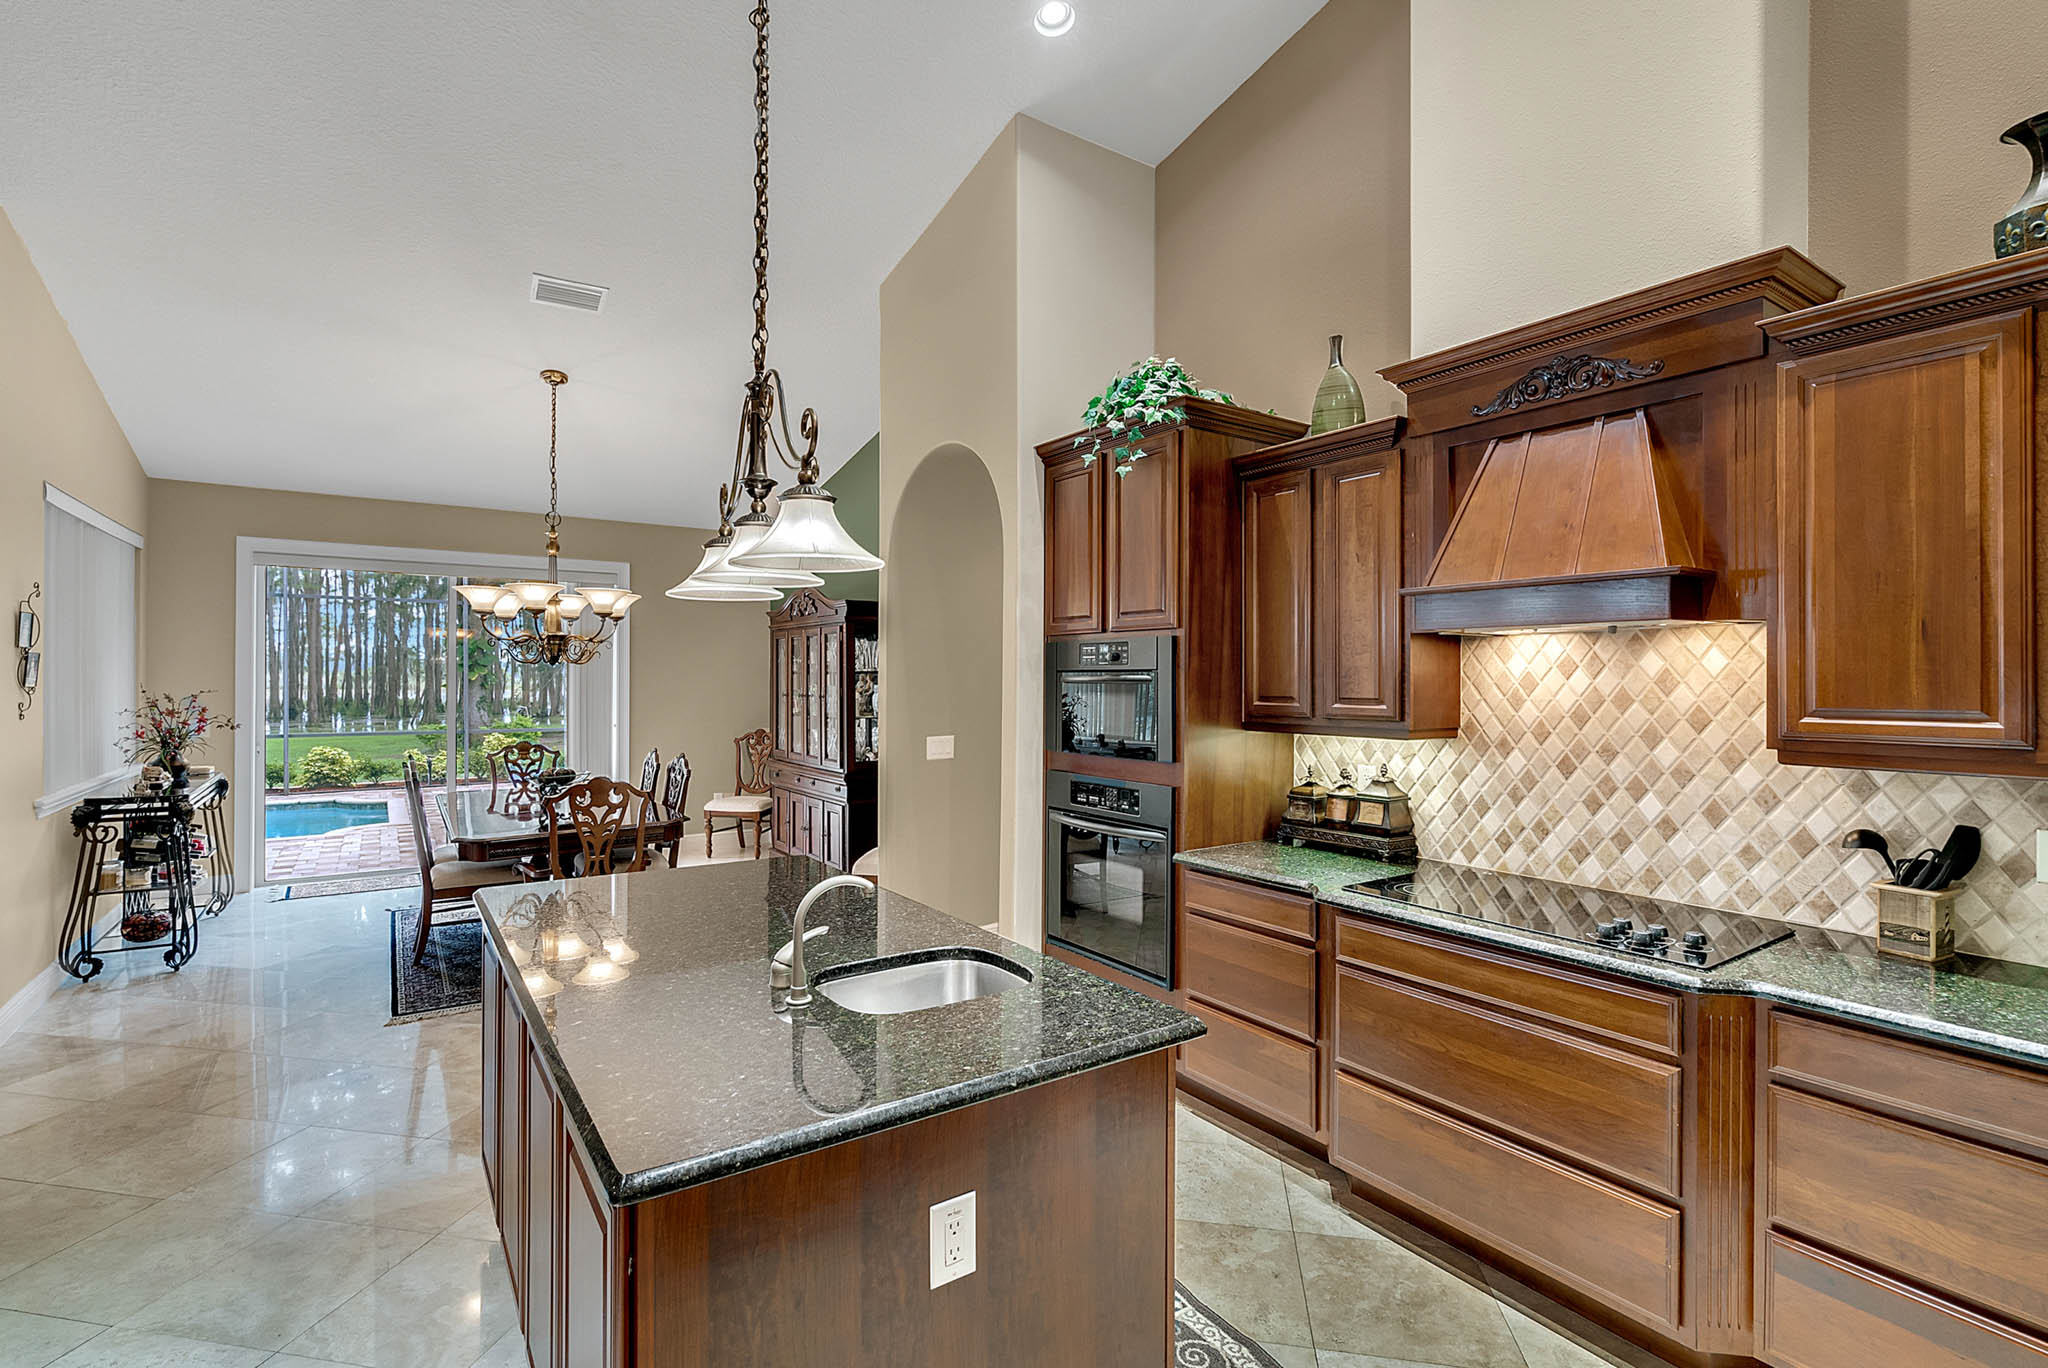 7919-Florida-Boys-Ranch-Rd--Groveland--FL-34736----12---Kitchen.jpg